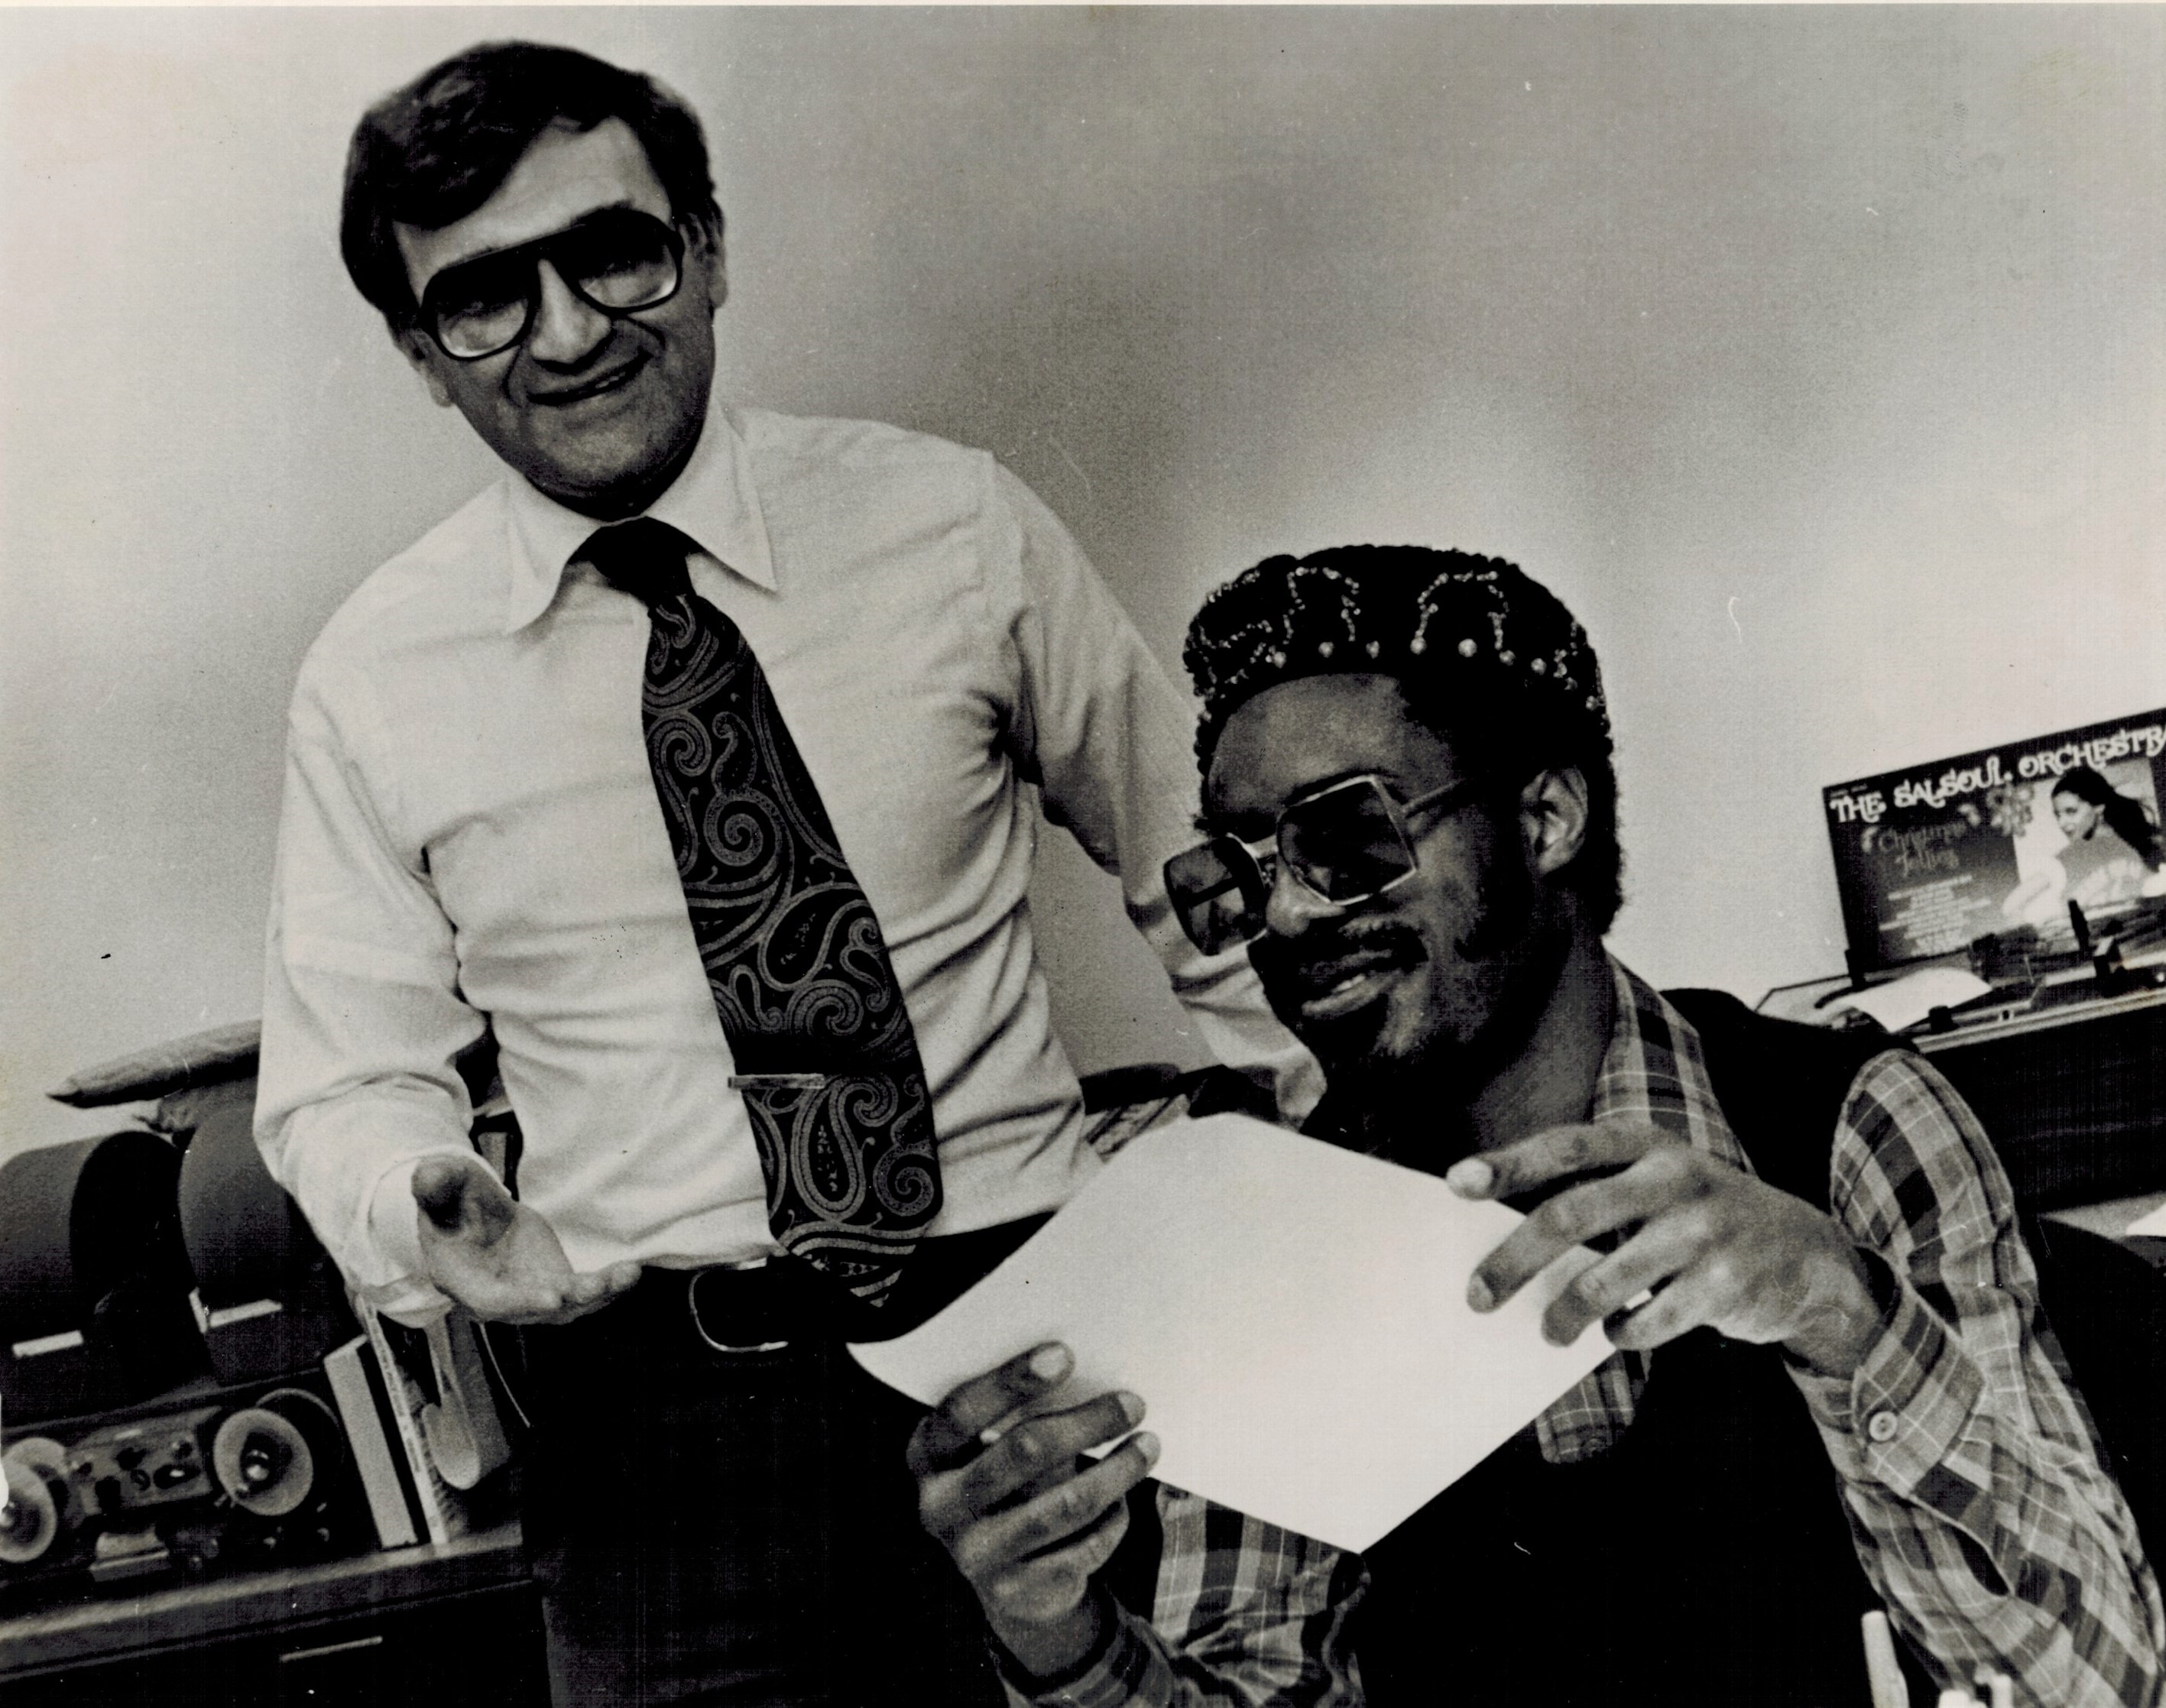 Stevie Wonder jokes in Rick Sklar's office, pretending to read WABC's ratings.